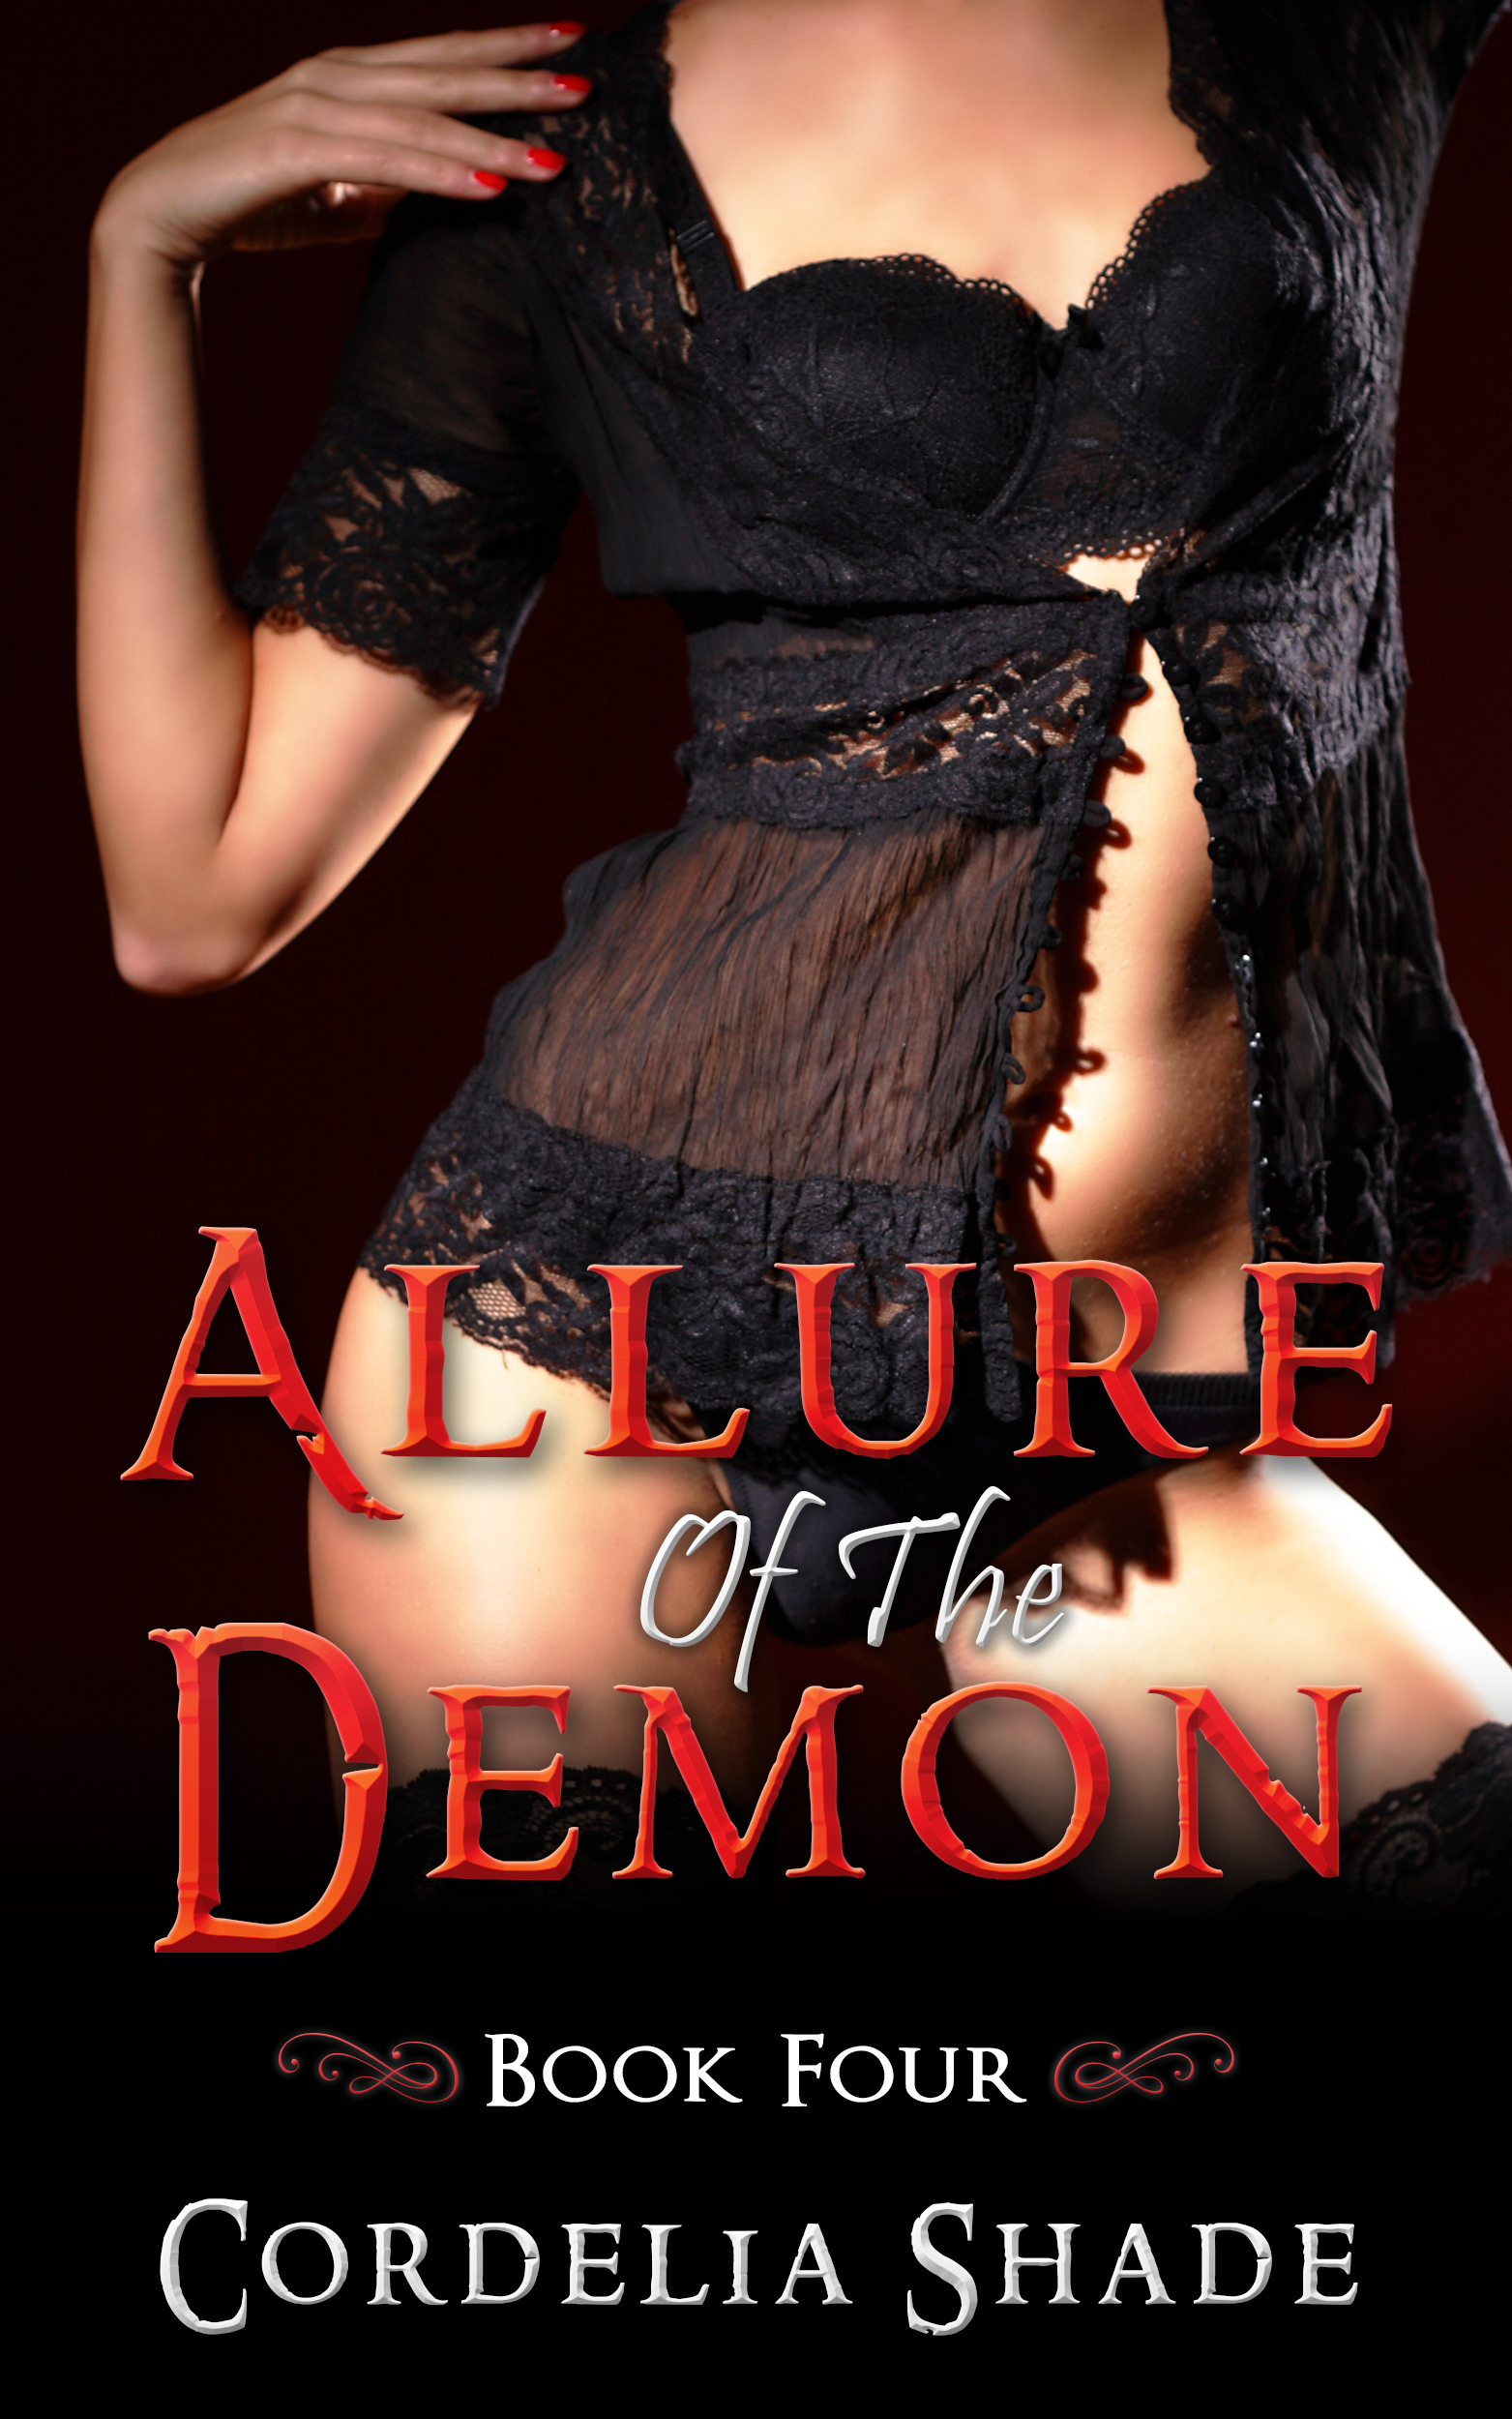 Allure Of The Demon: Book Four Cordelia Shade